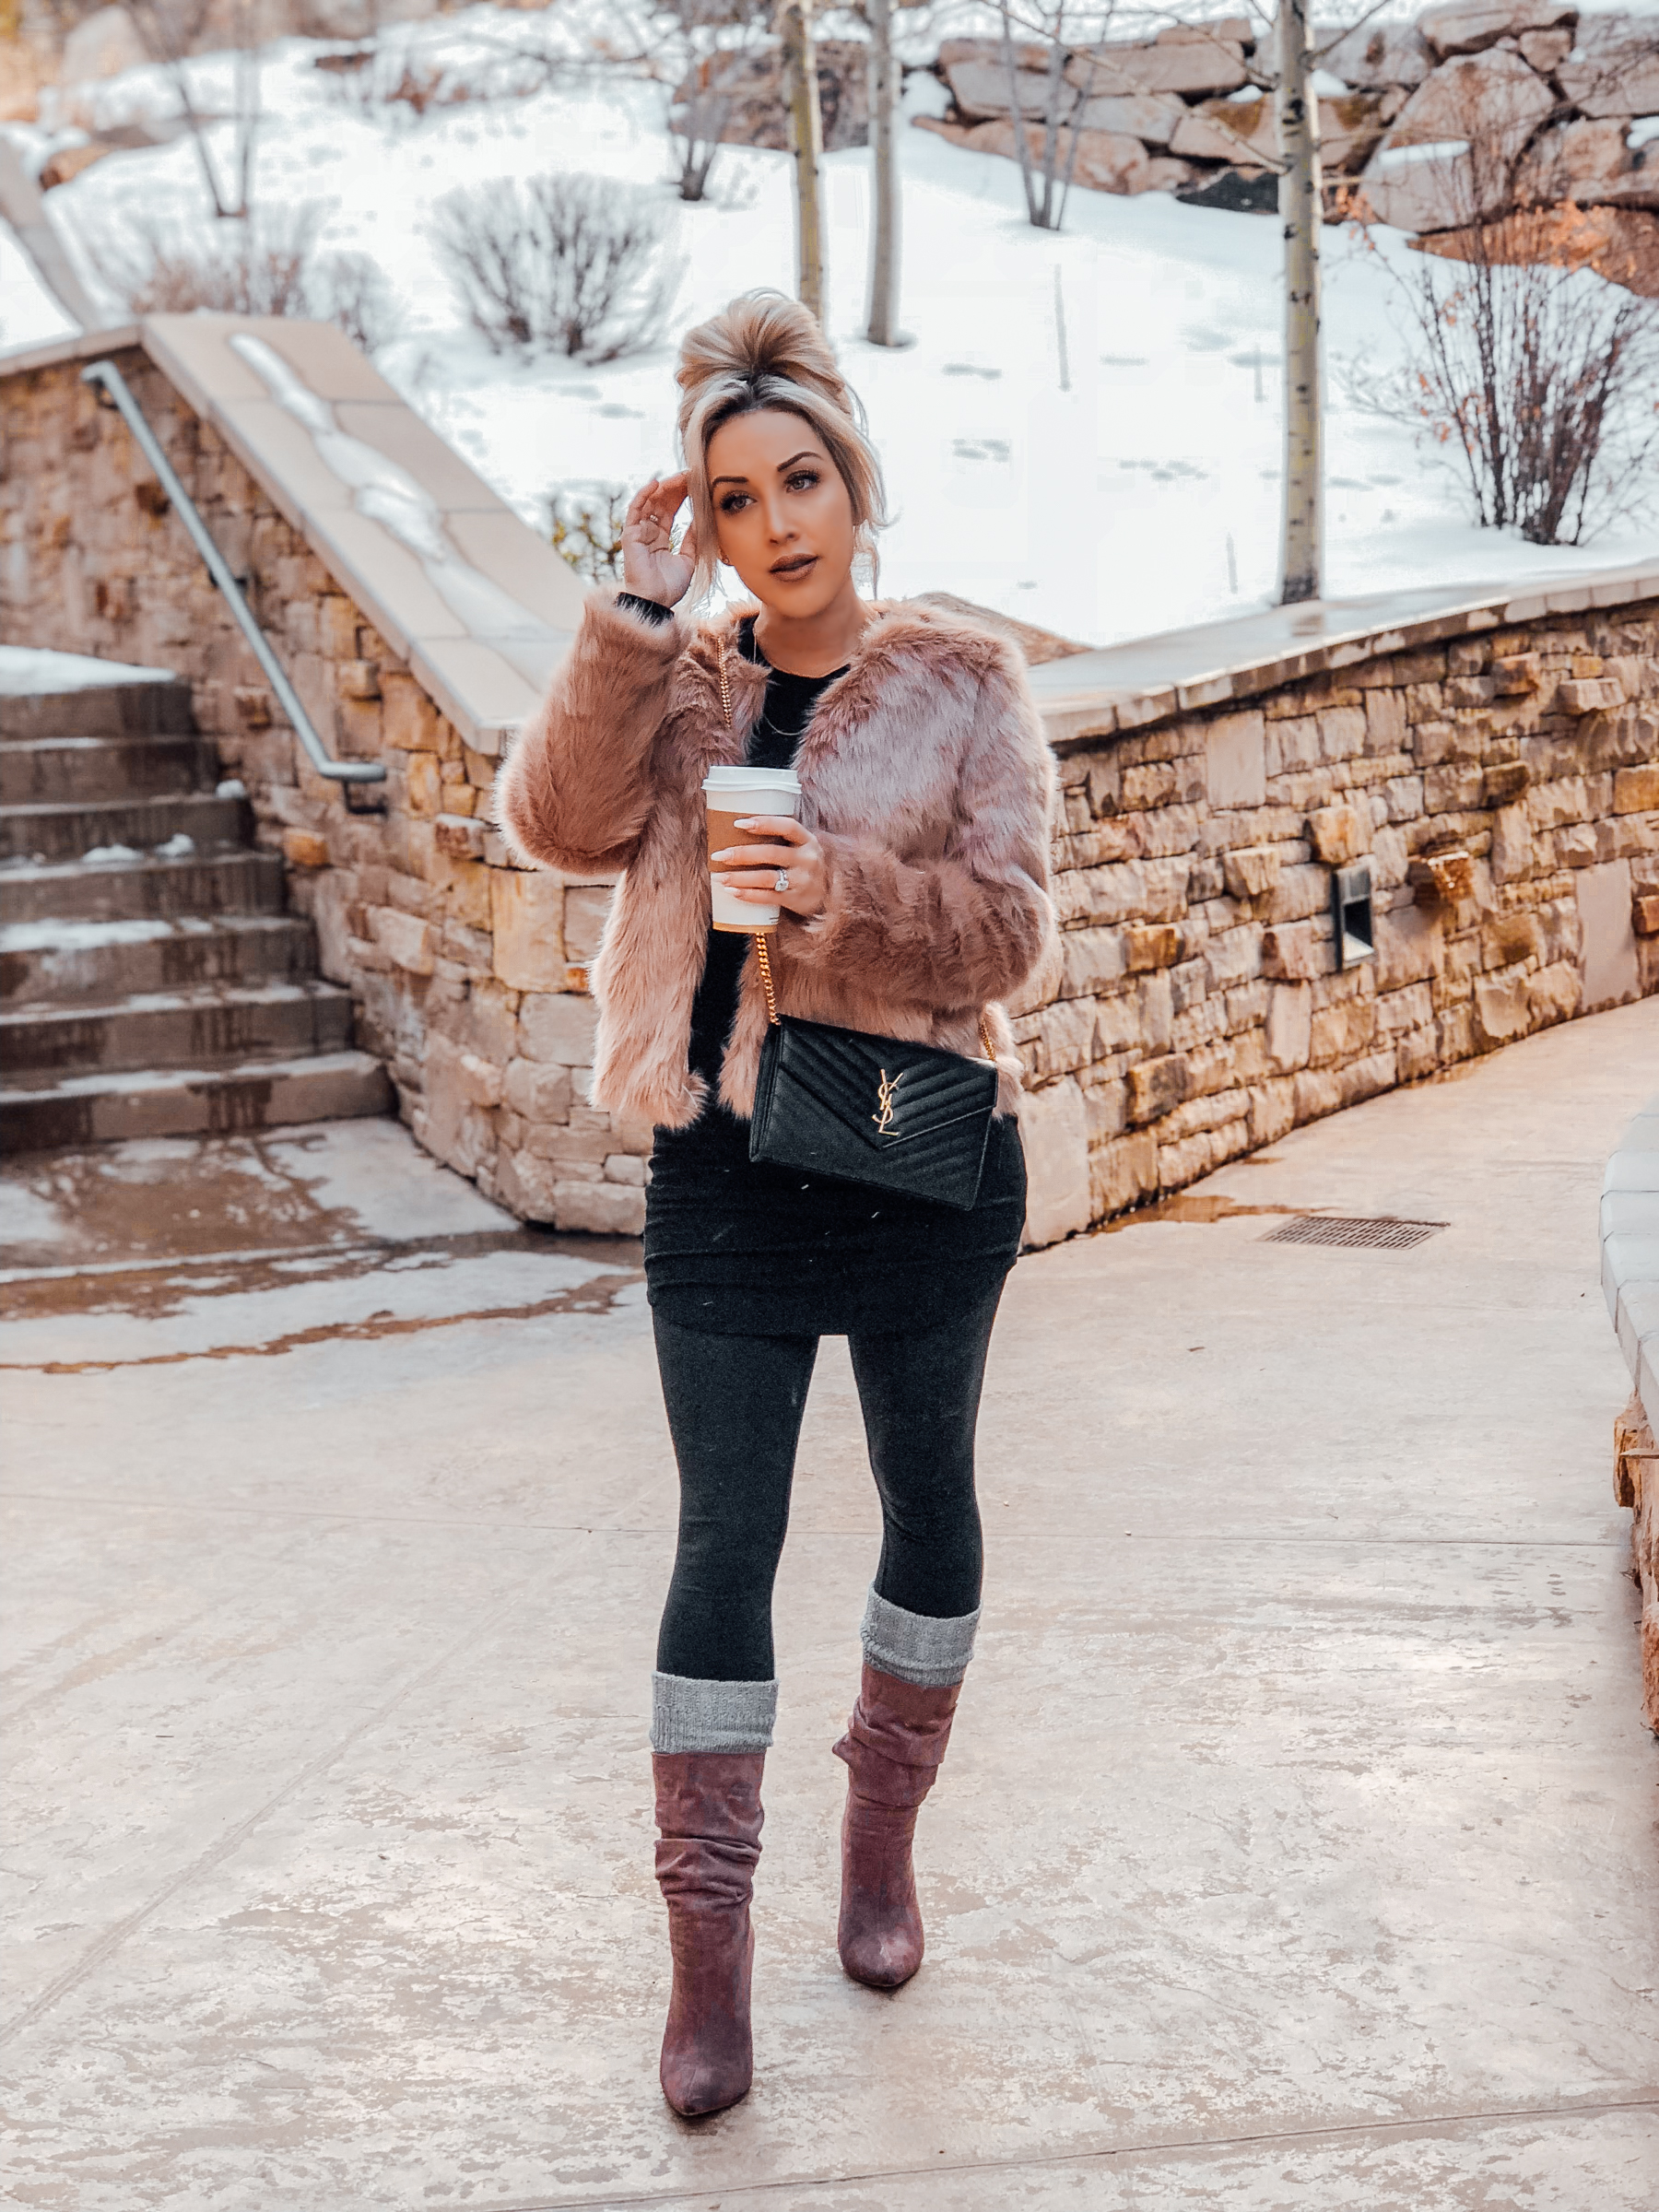 Blondie in the City | Pink Faux Fur Coat | Winter Fashion